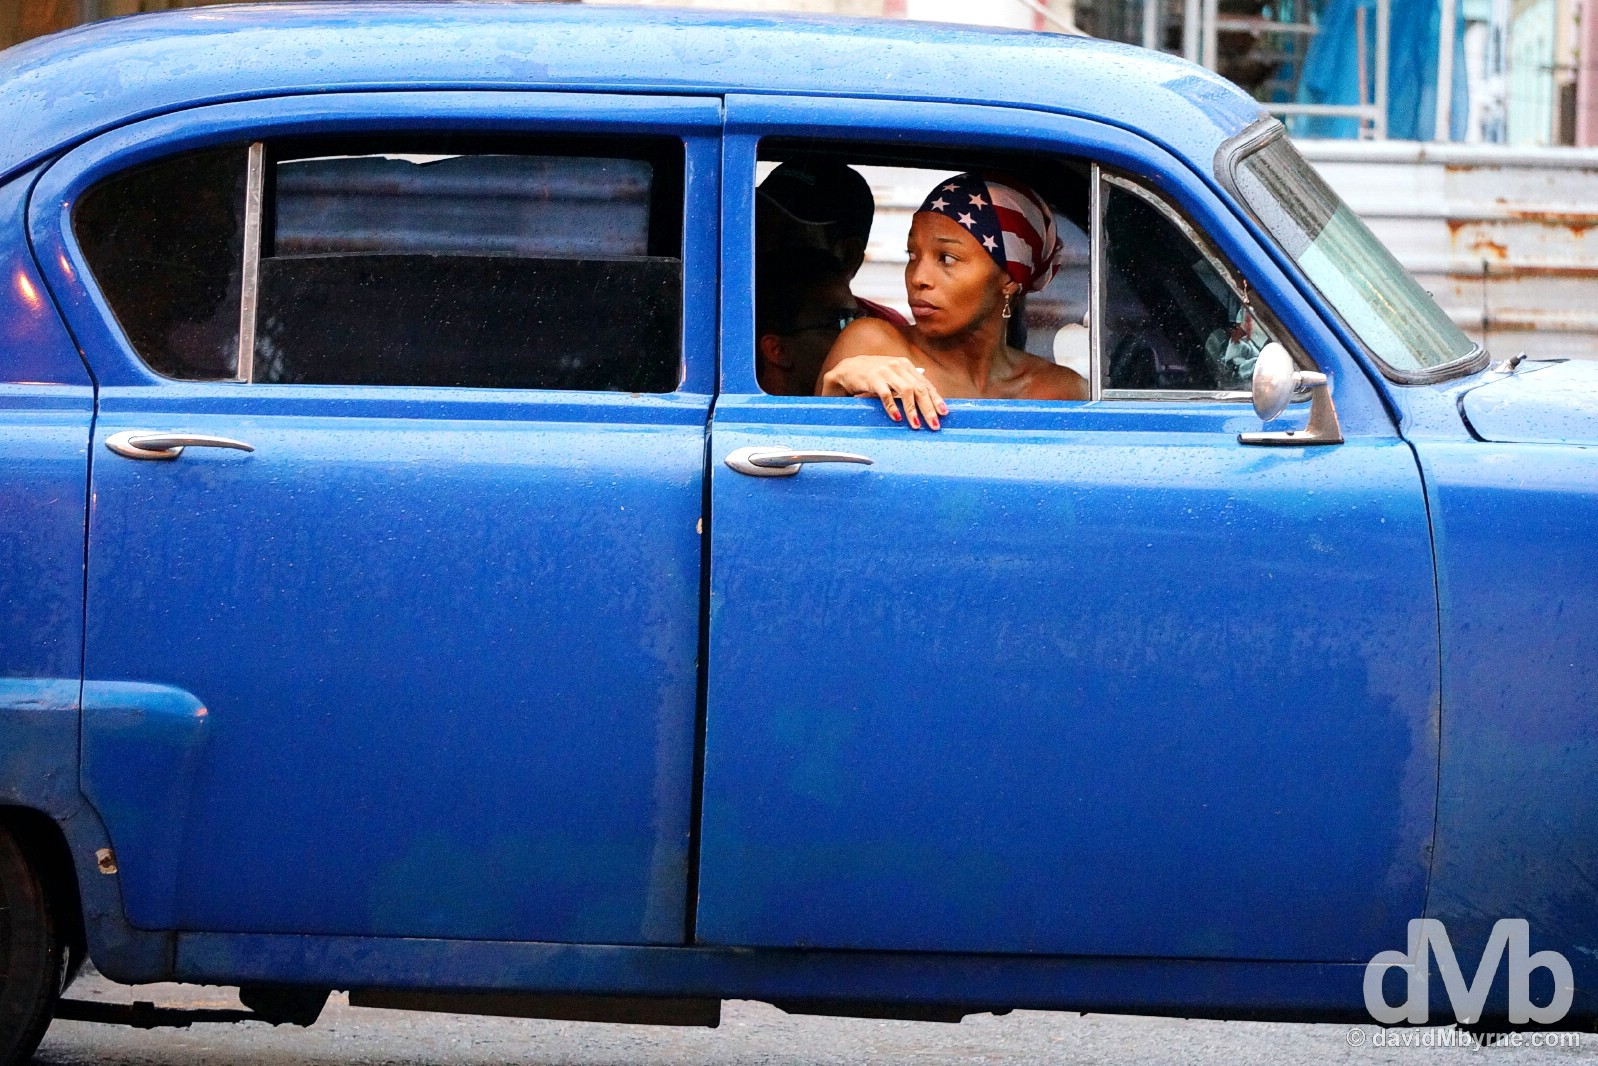 On the streets of Havana, Cuba. April 30, 2015.